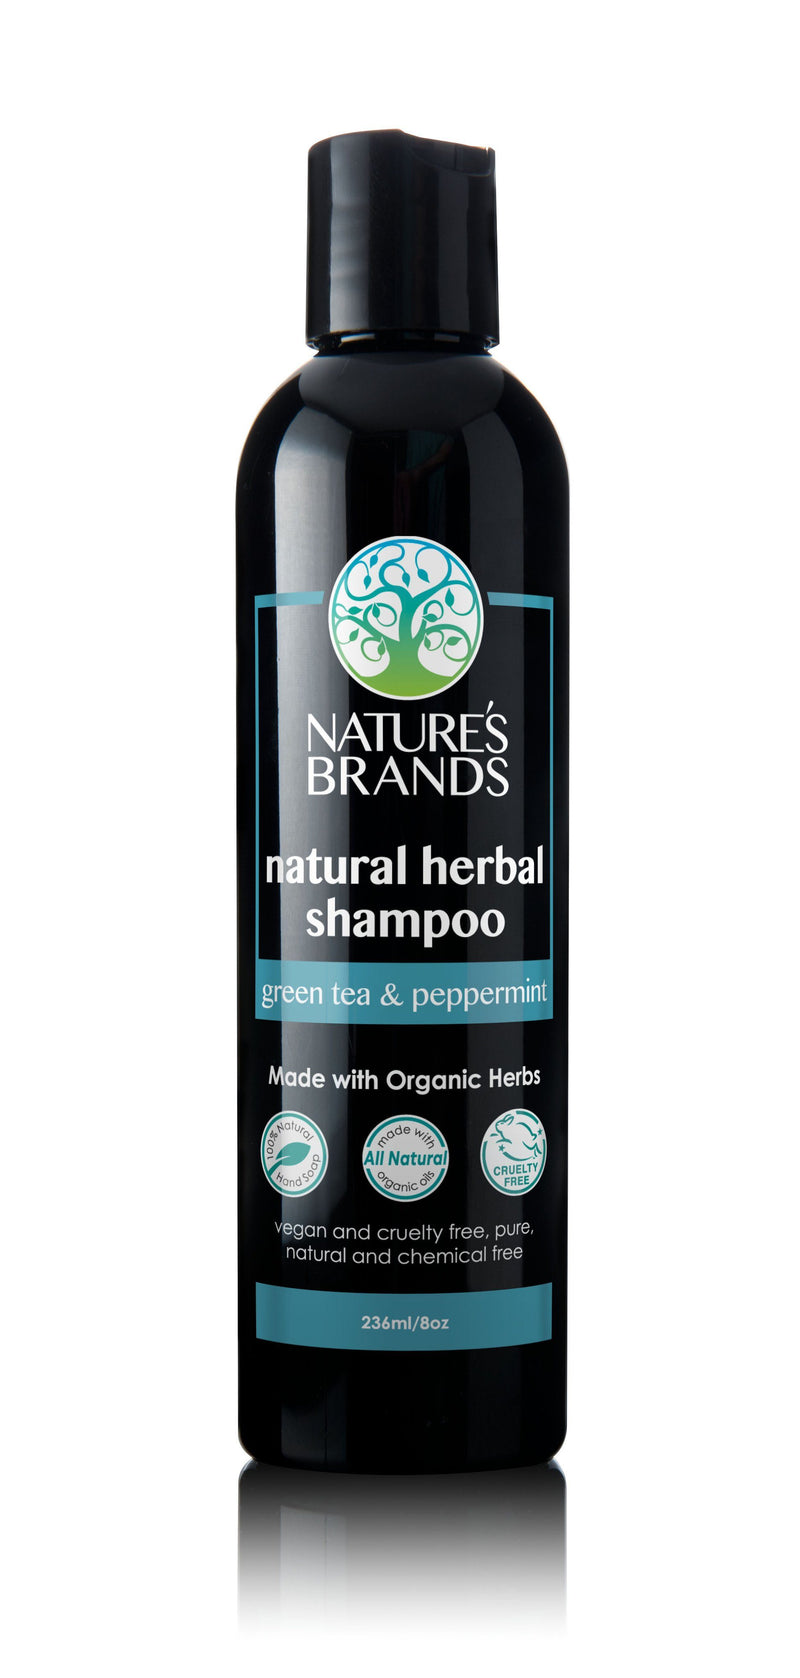 Herbal Choice Mari Natural Shampoo, Green Tea And Peppermint; Made with Organic - Herbal Choice Mari Natural Shampoo, Green Tea And Peppermint; Made with Organic - 8floz